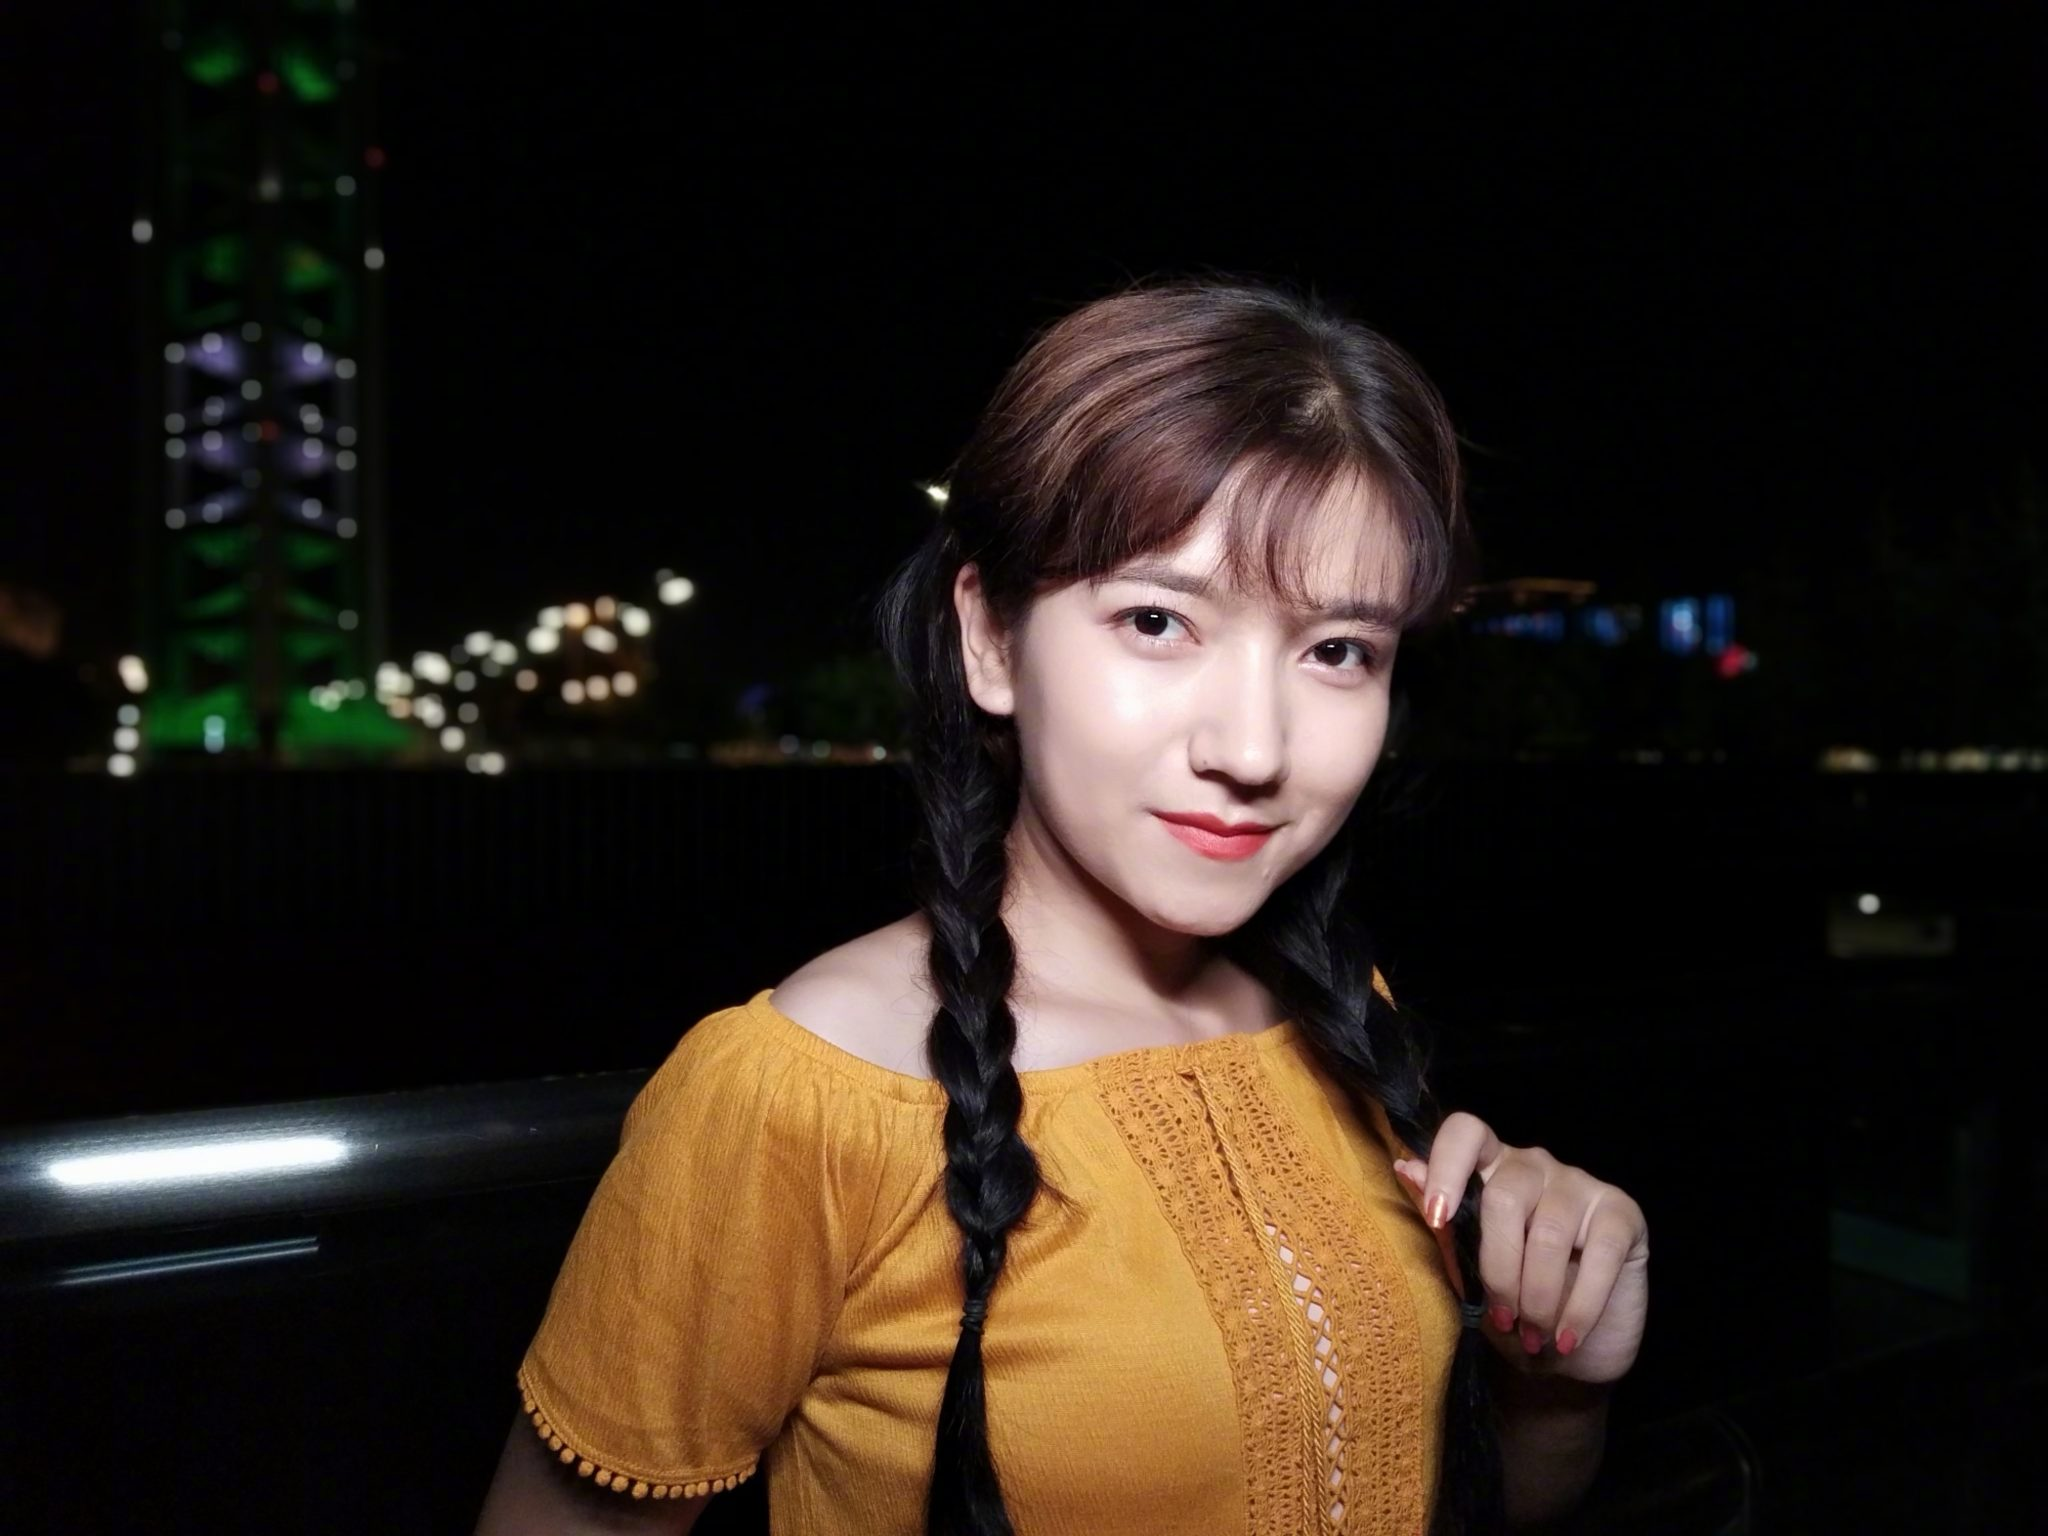 Here are the official Xiaomi Redmi 6 Pro camera samples 4